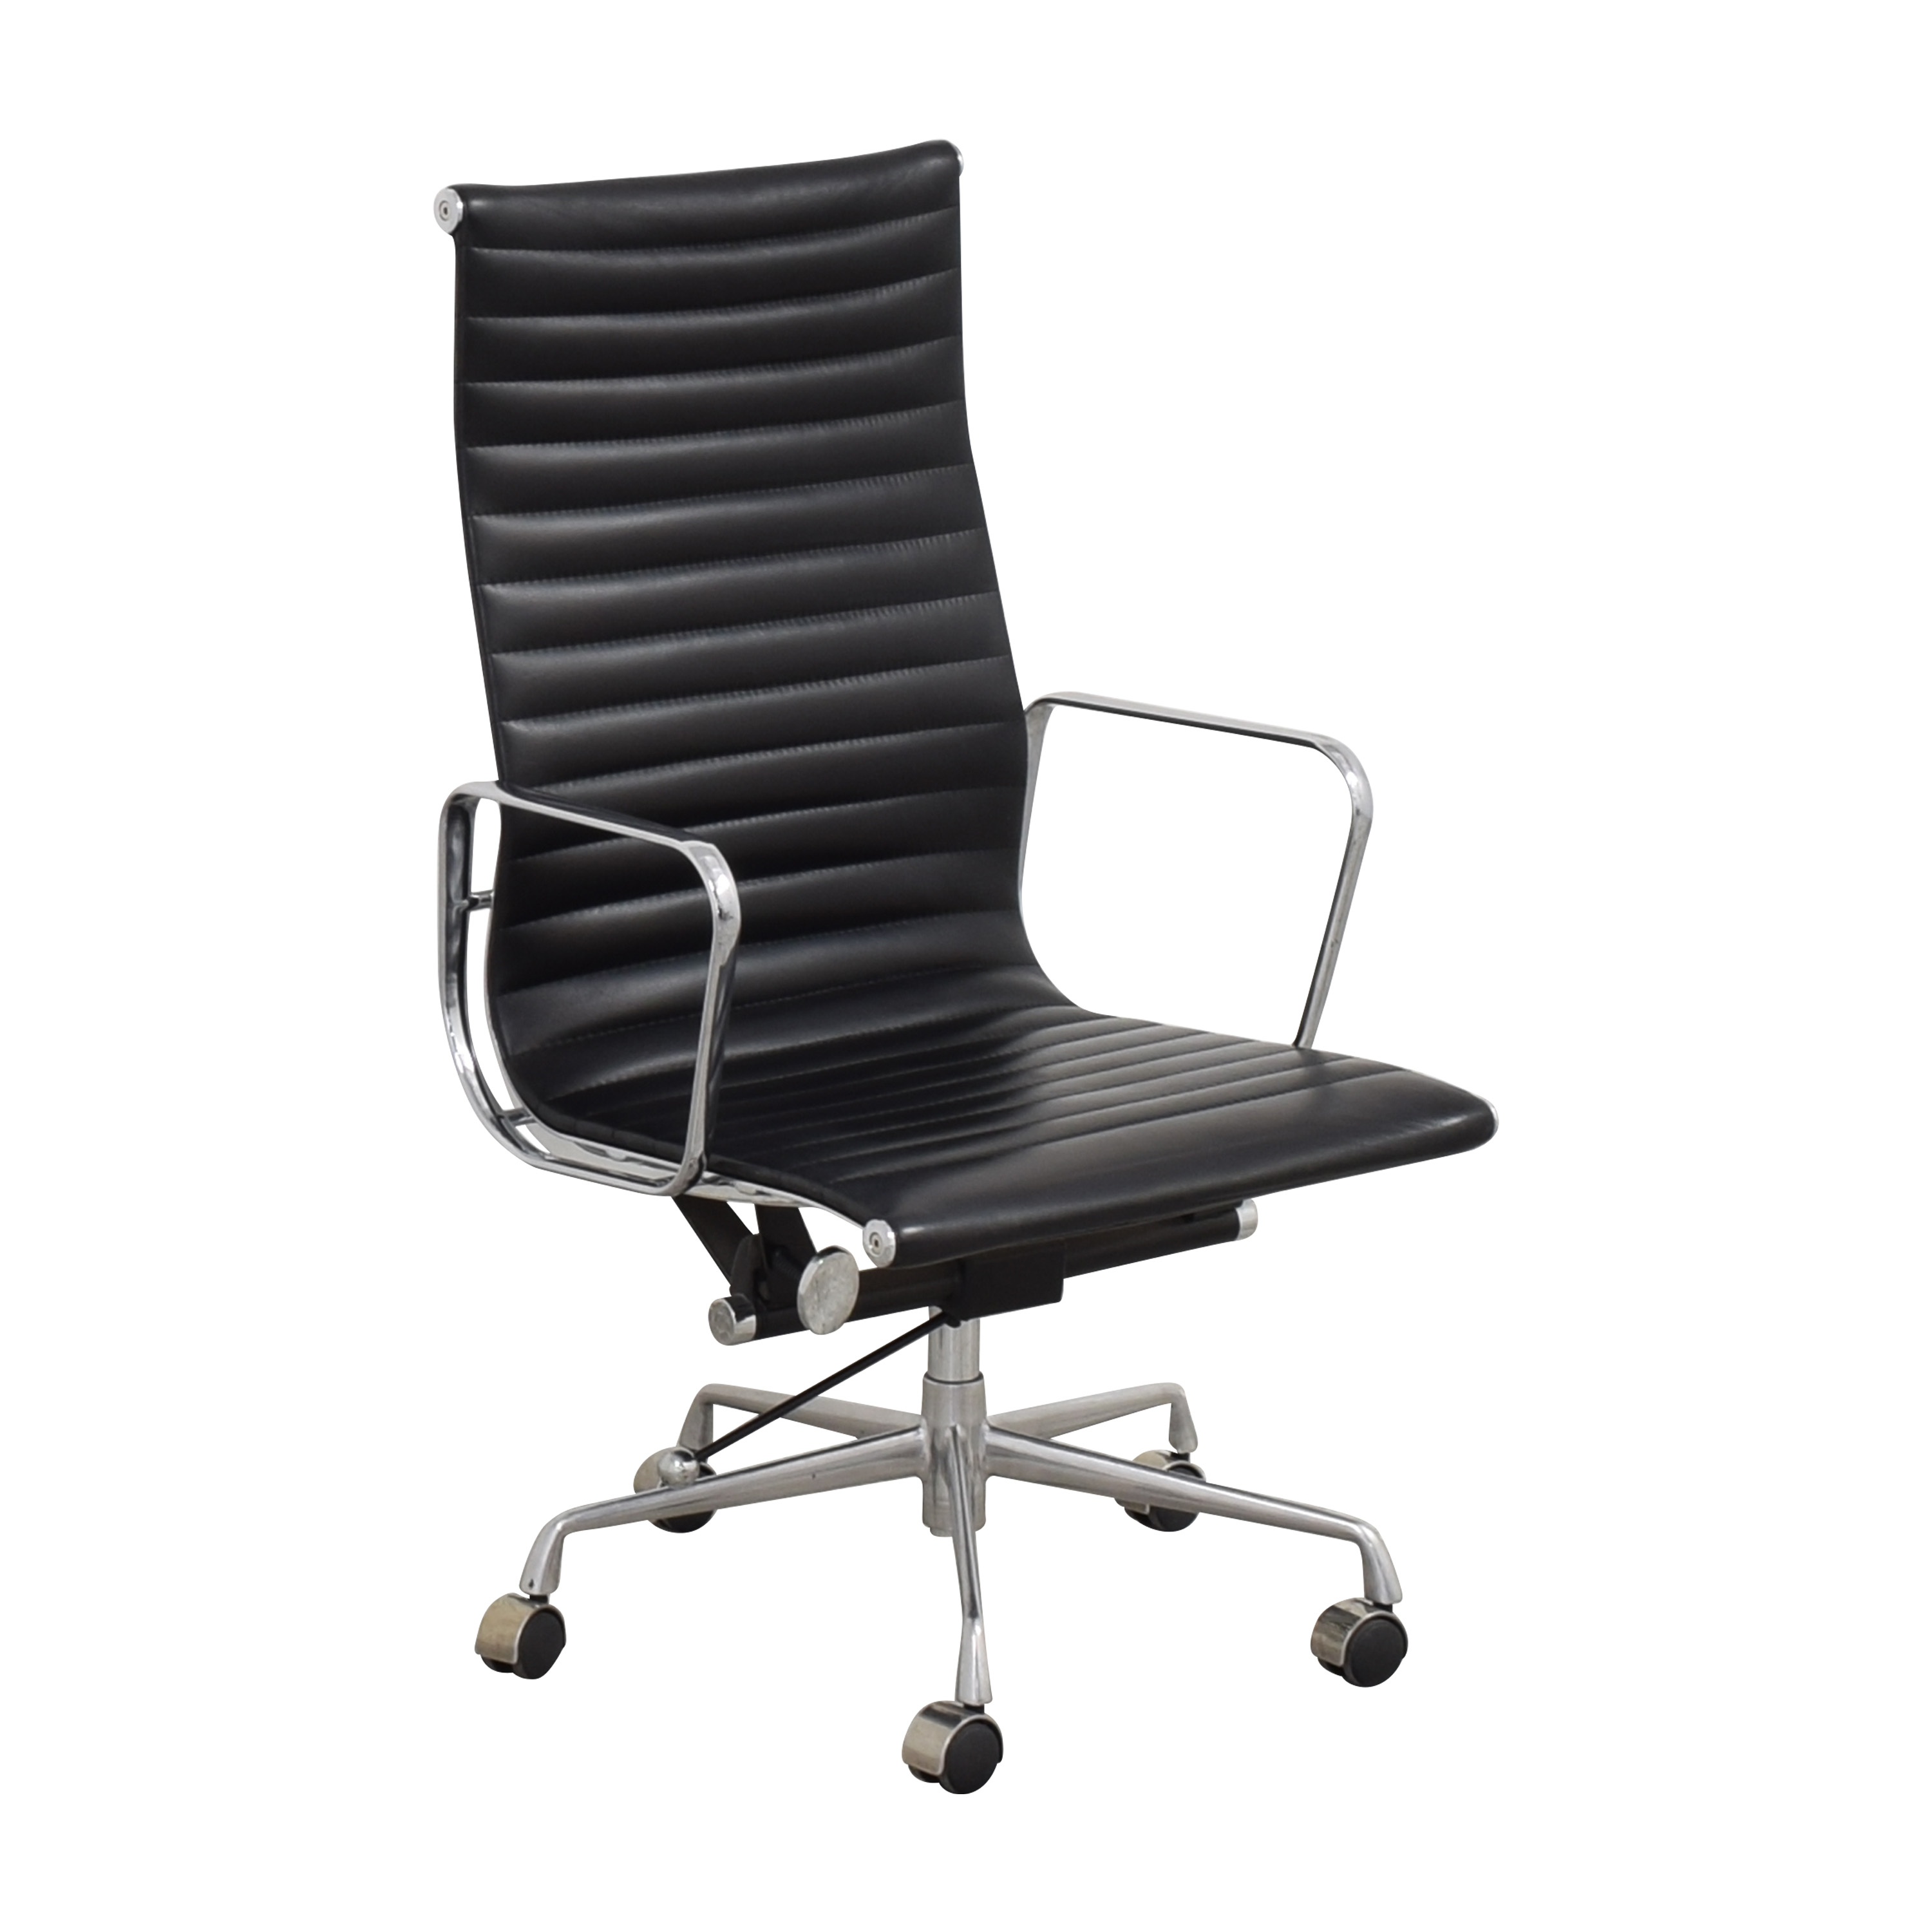 Eames-Style High Back Ribbed Office Chair dimensions